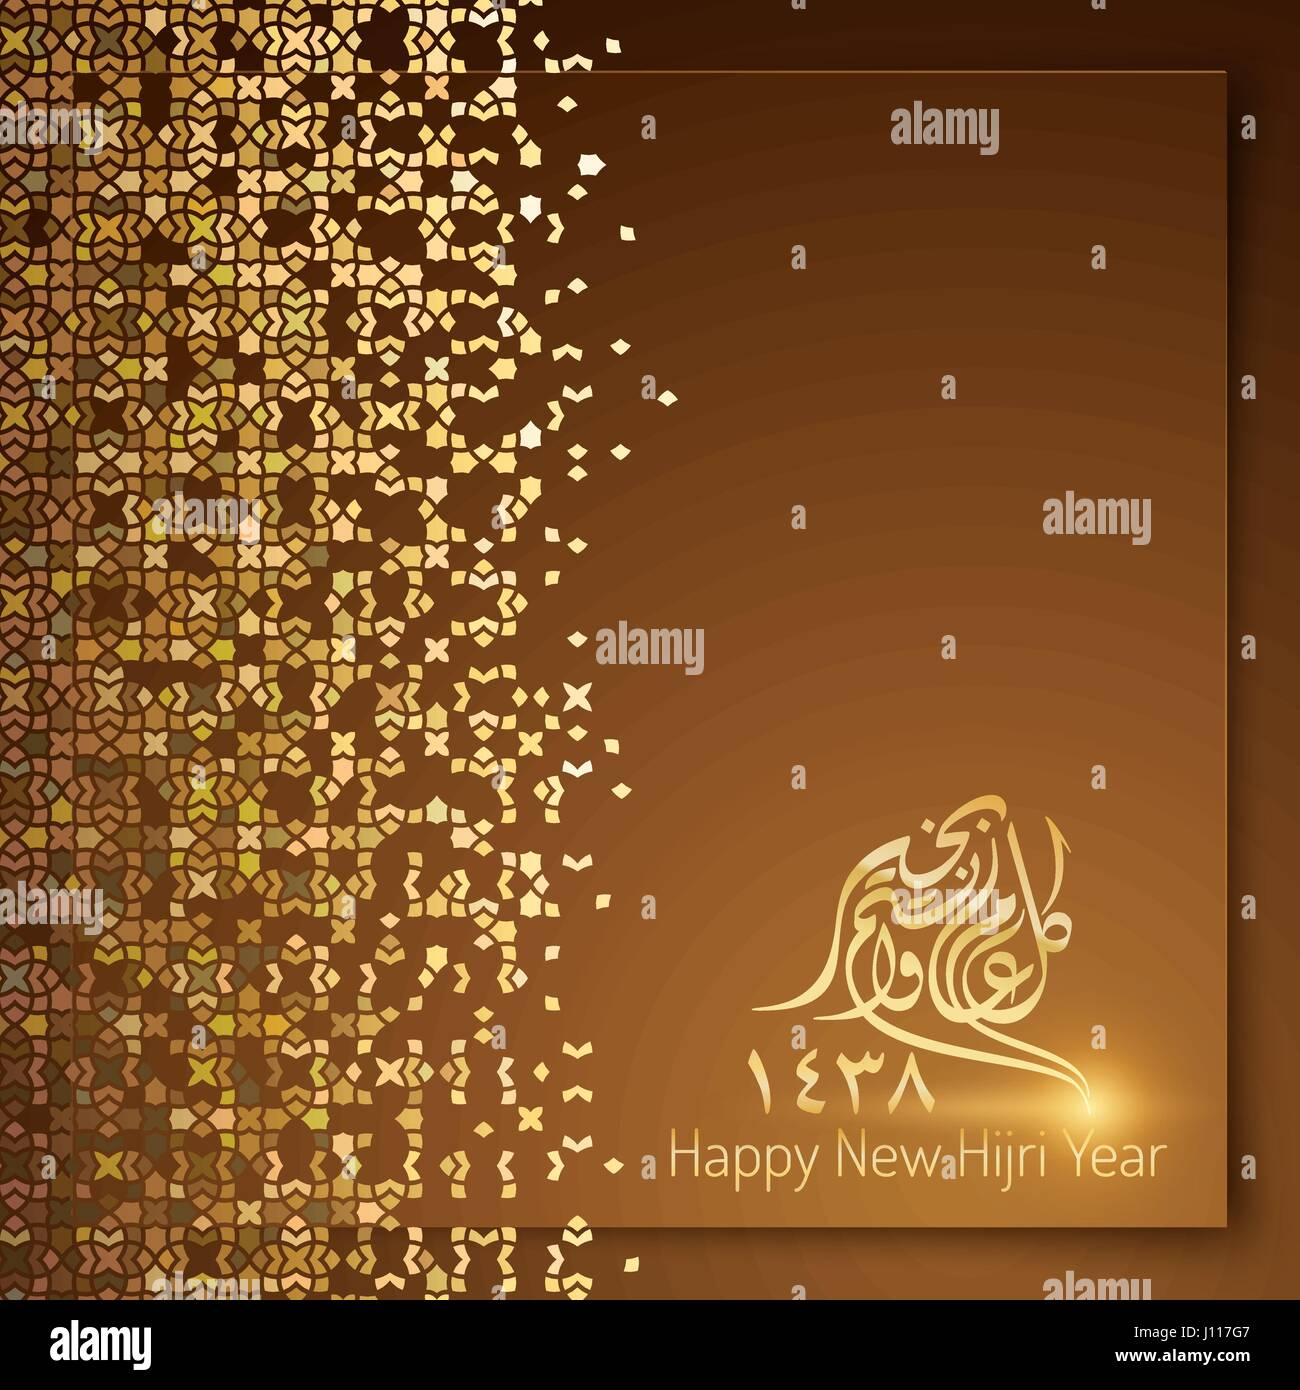 Islamic new hijri year 1438 greeting card template with morocco gold islamic new hijri year 1438 greeting card template with morocco gold pattern kristyandbryce Image collections